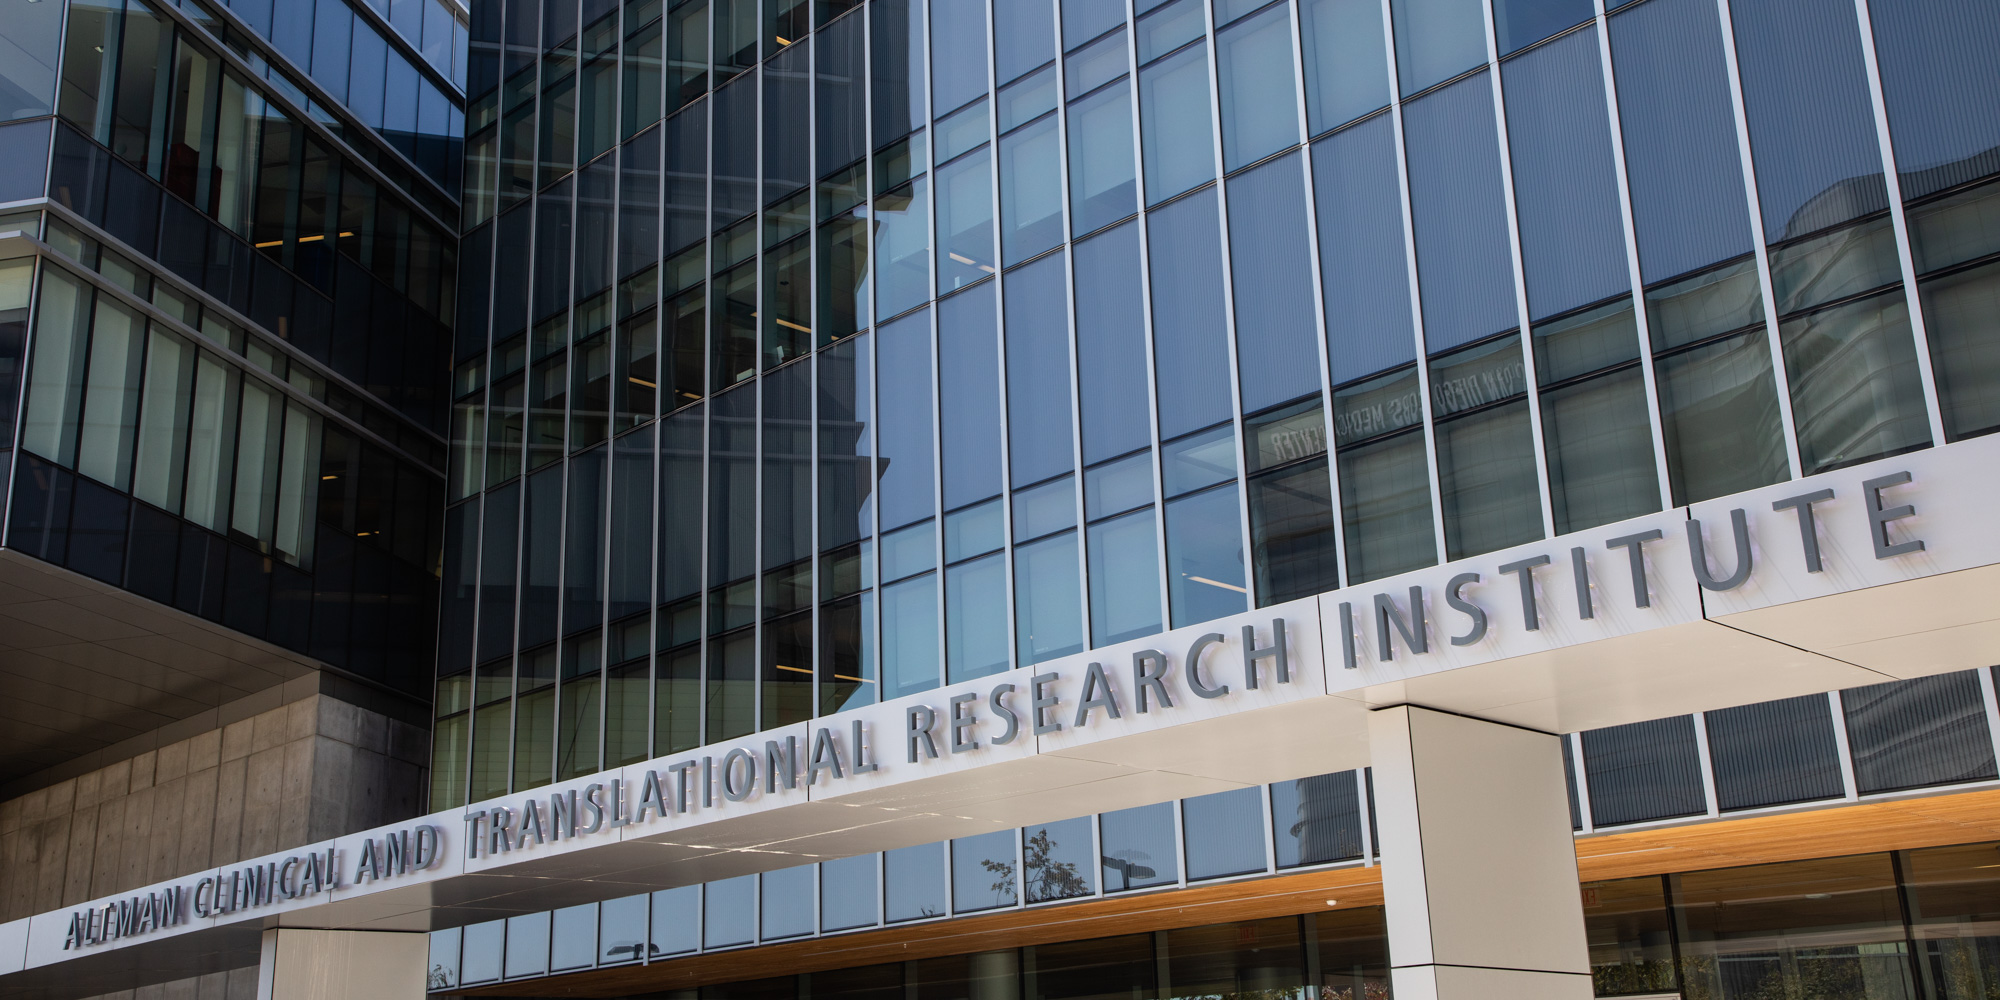 A UCSD Whistleblower Alleges Problems With University's Human Research Protections Program